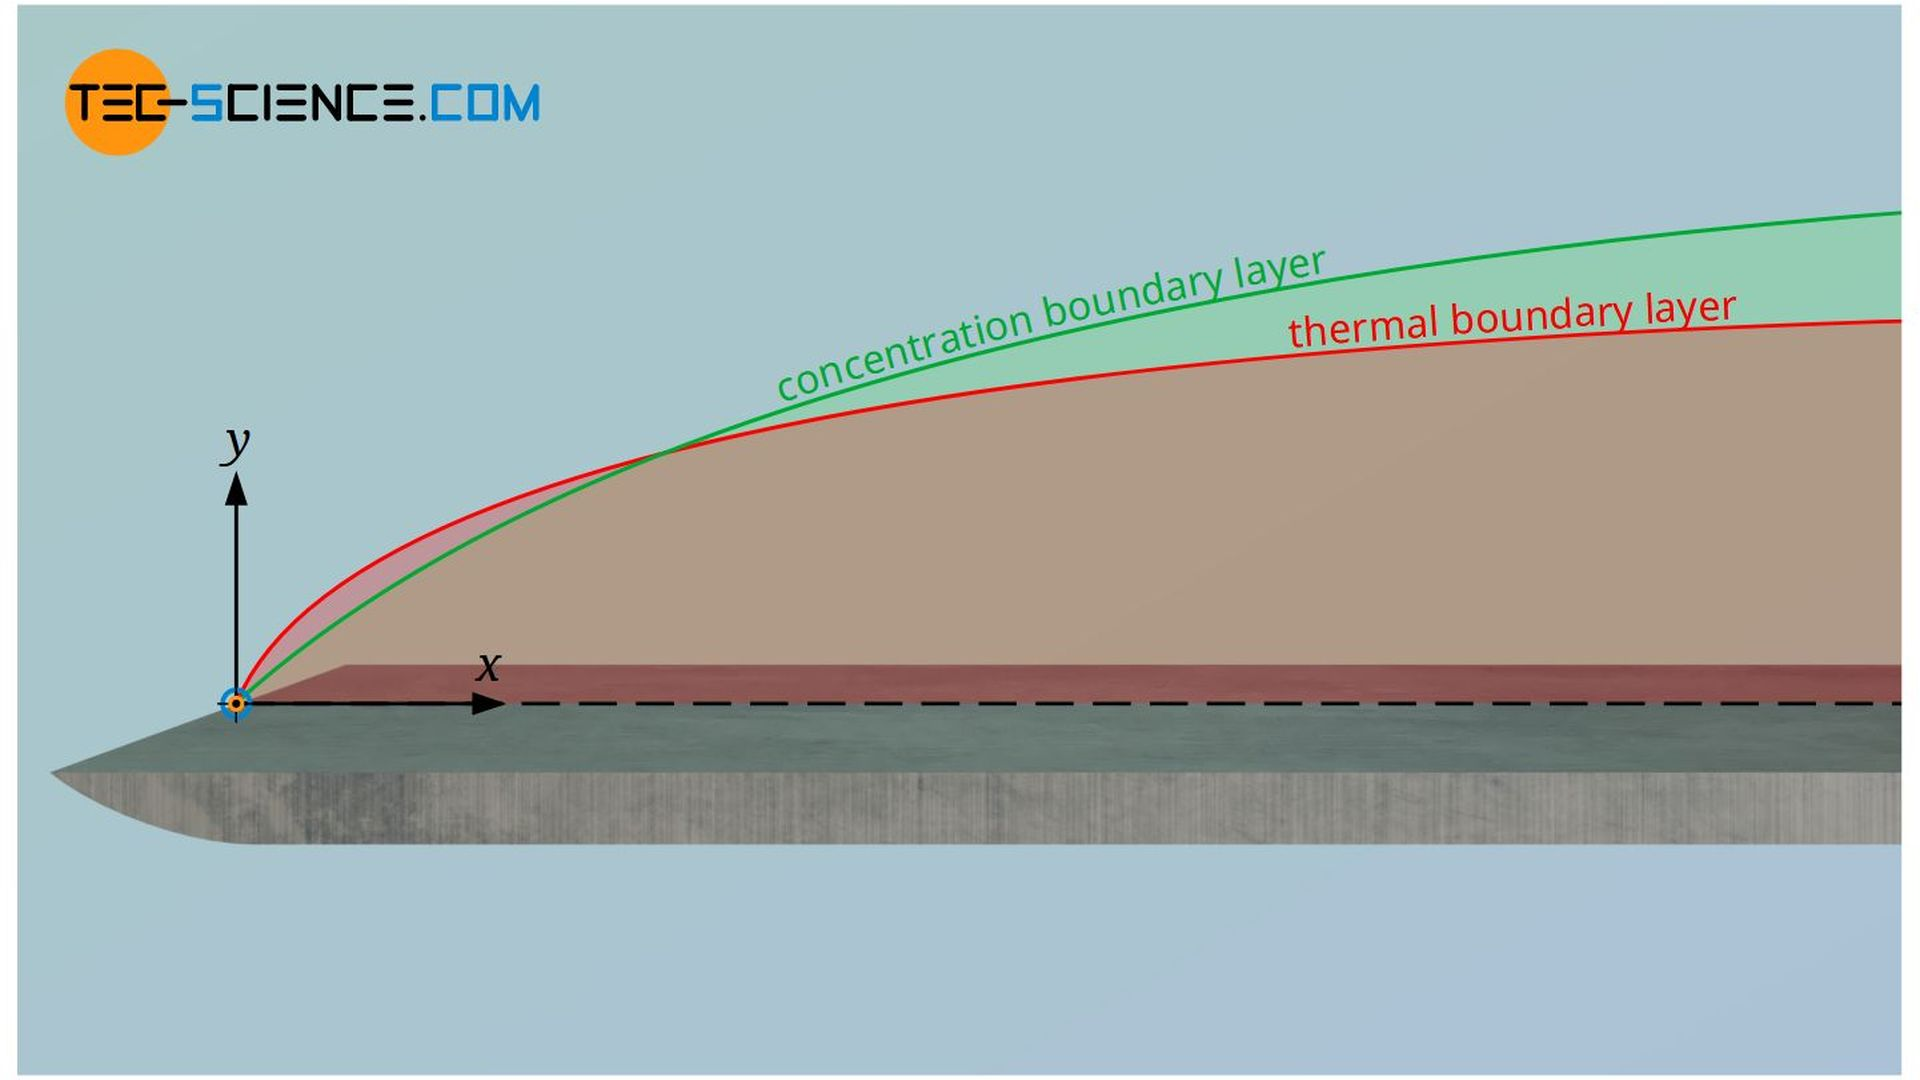 Lewis number as a measure for the ratio of the thickness of the thermal boundary layer and the concentration boundary layer